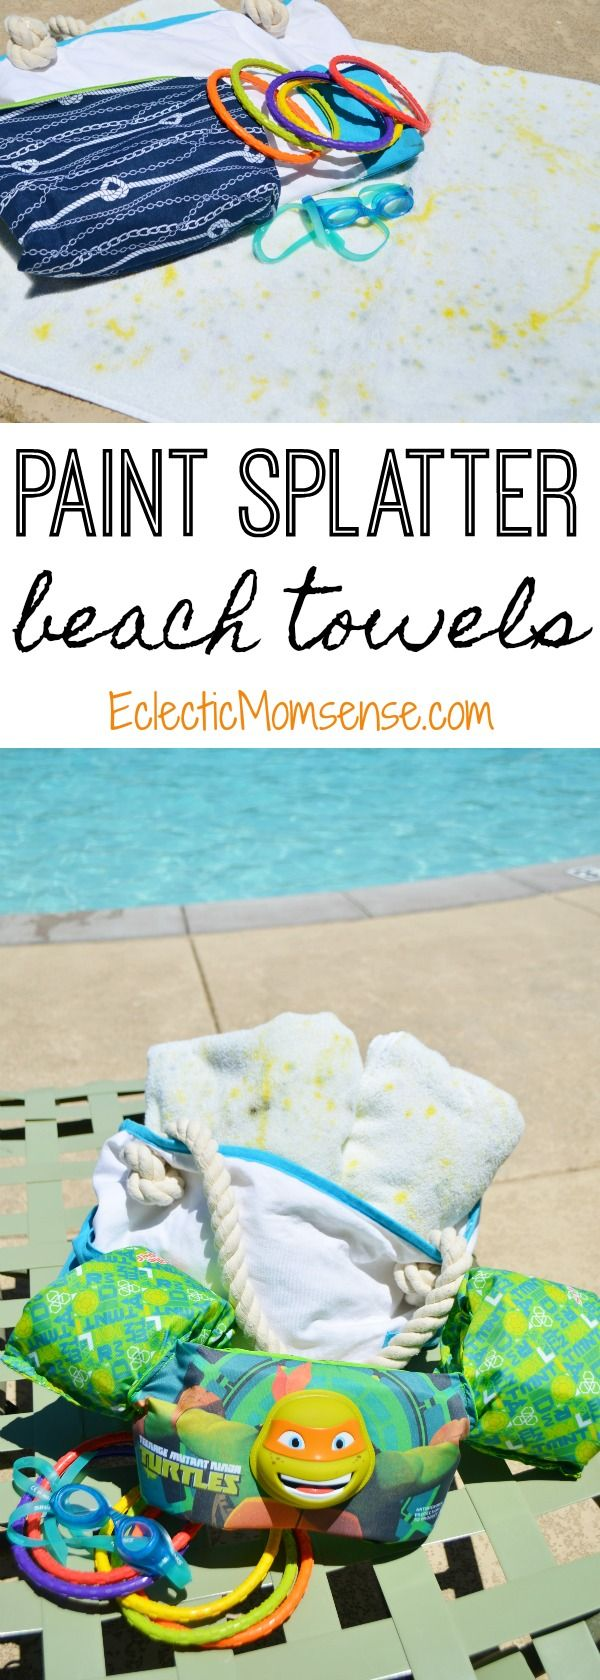 Splatter Paint DIY Beach Towels - Splash into summer with DIY Beach Towels. A fun splatter paint design the kids will love designing.